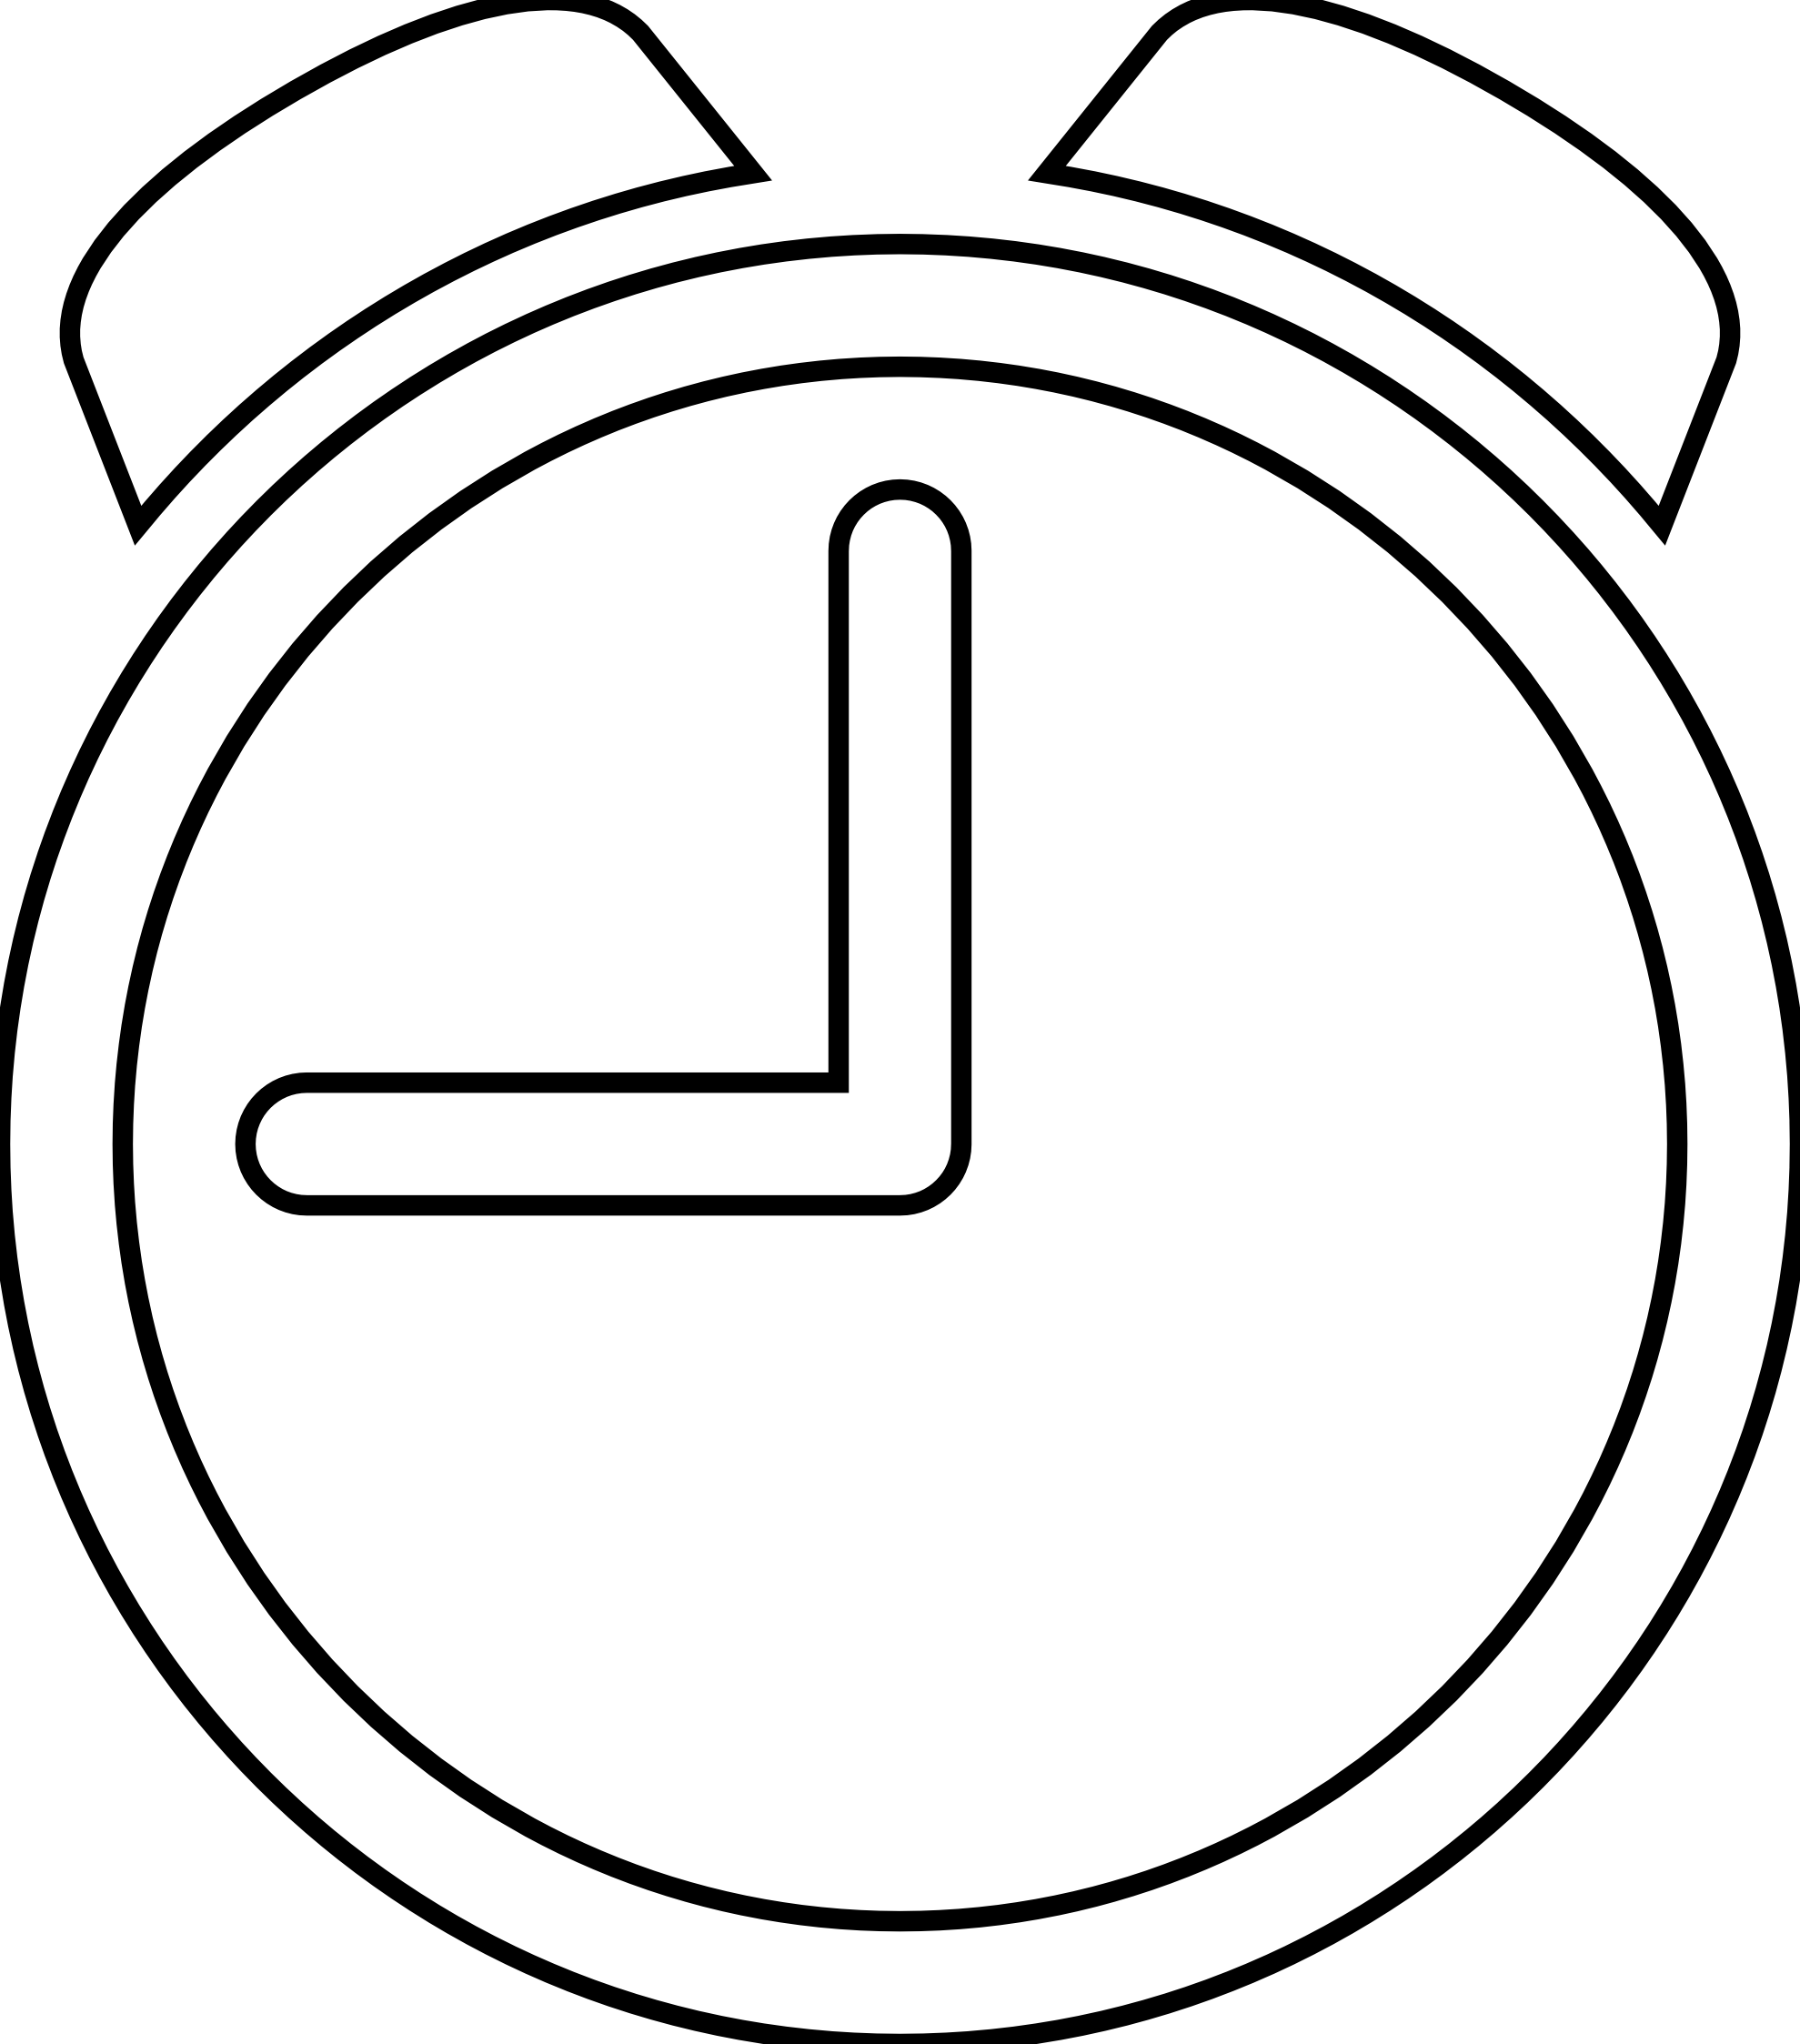 Timer Clipart Black And White.